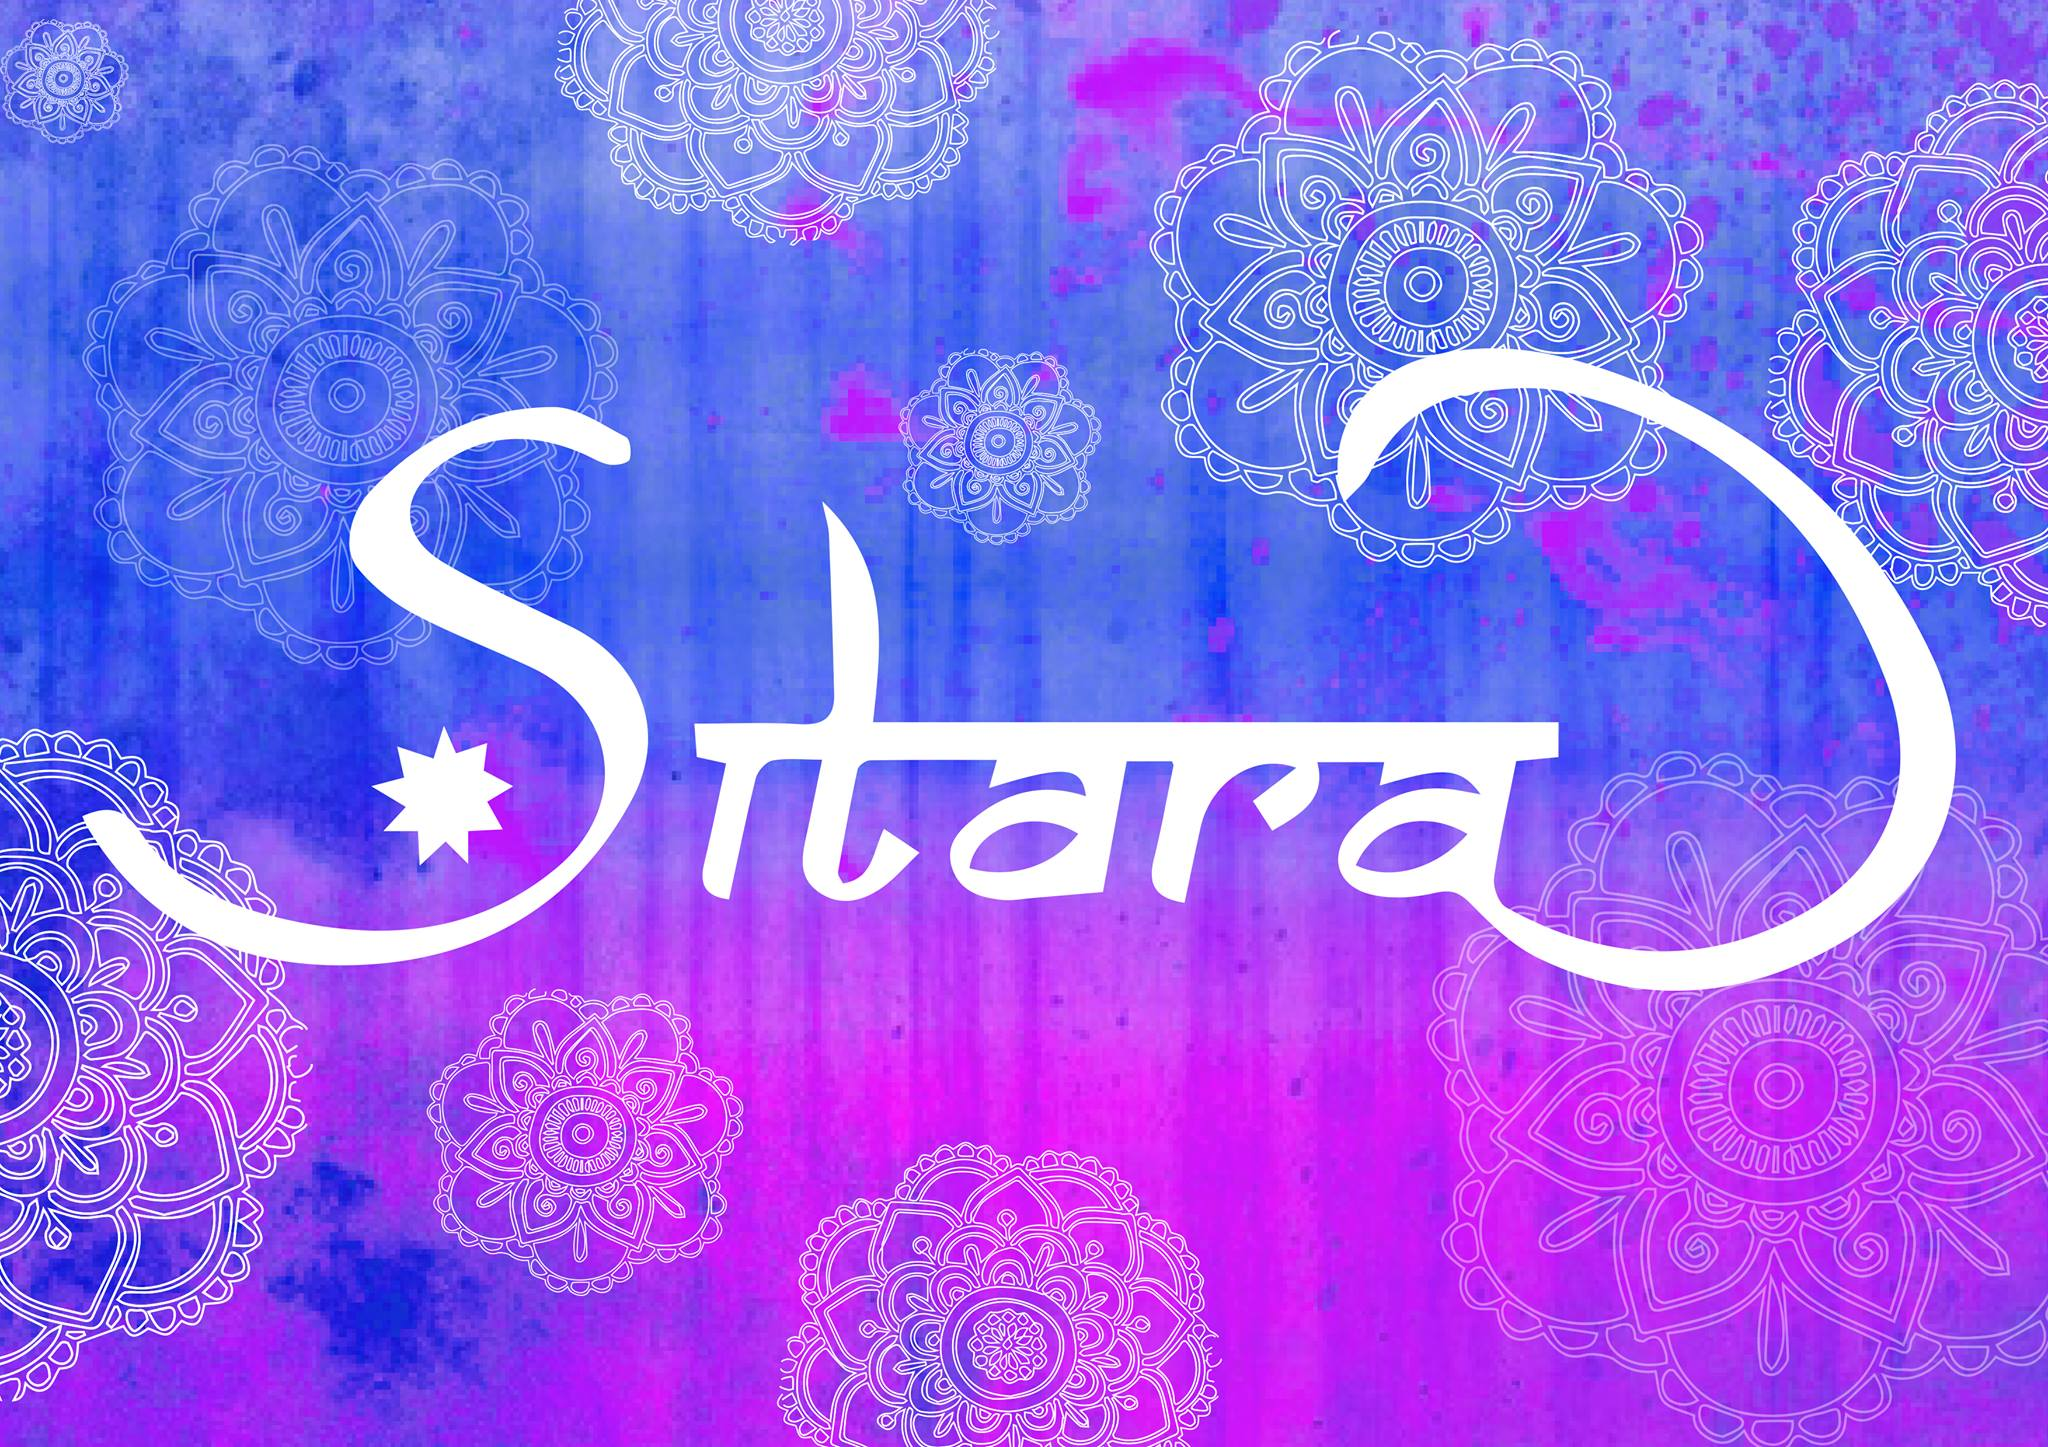 Sitara Name Wallpaper